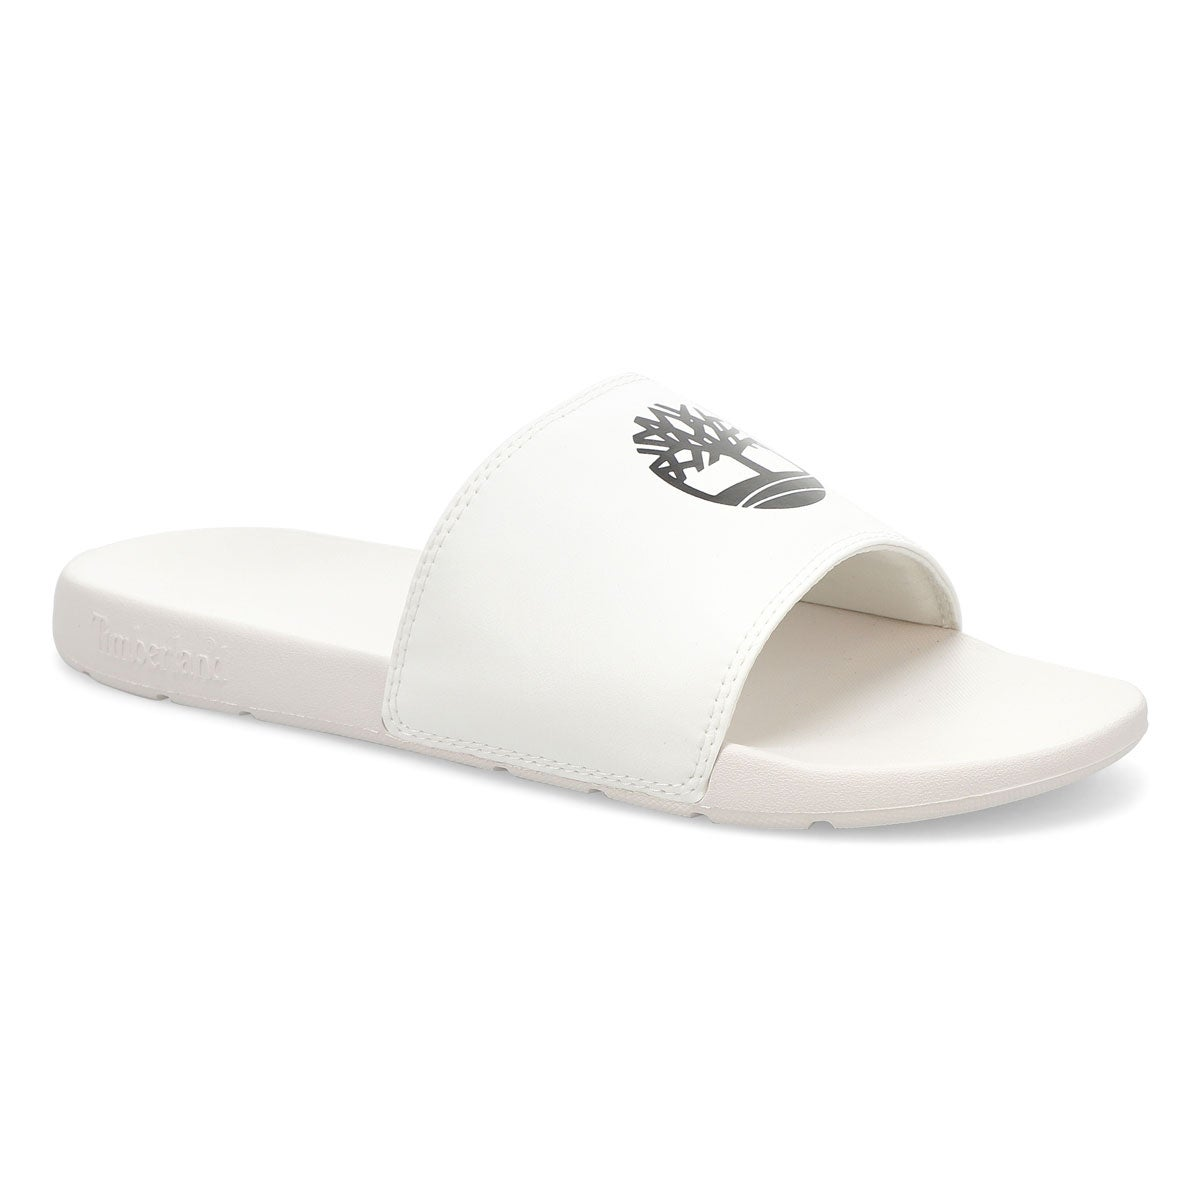 Men's Playa Sands Slide Sandal - White/Black